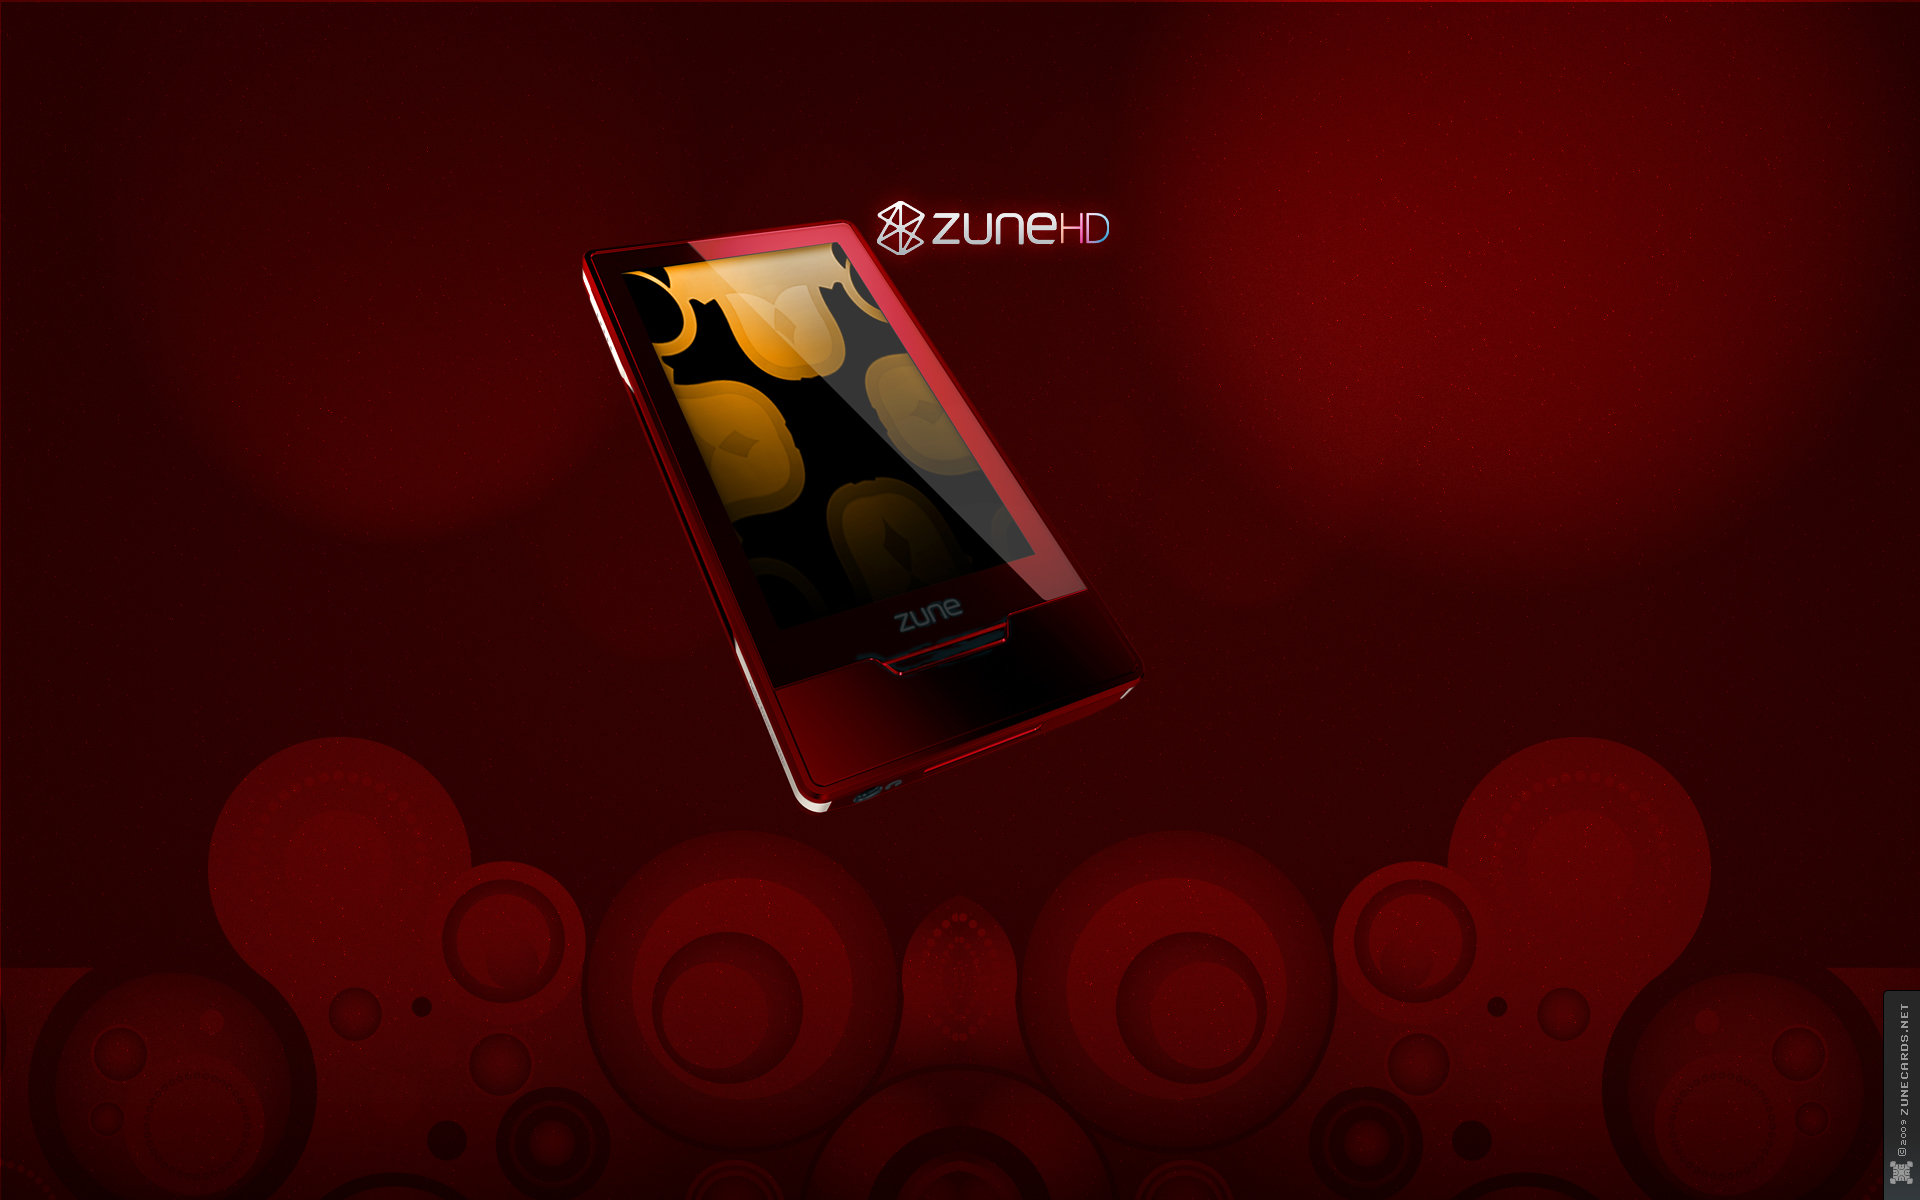 1920x1080 clean zune backgrounds desktop pc and mac wallpapers.